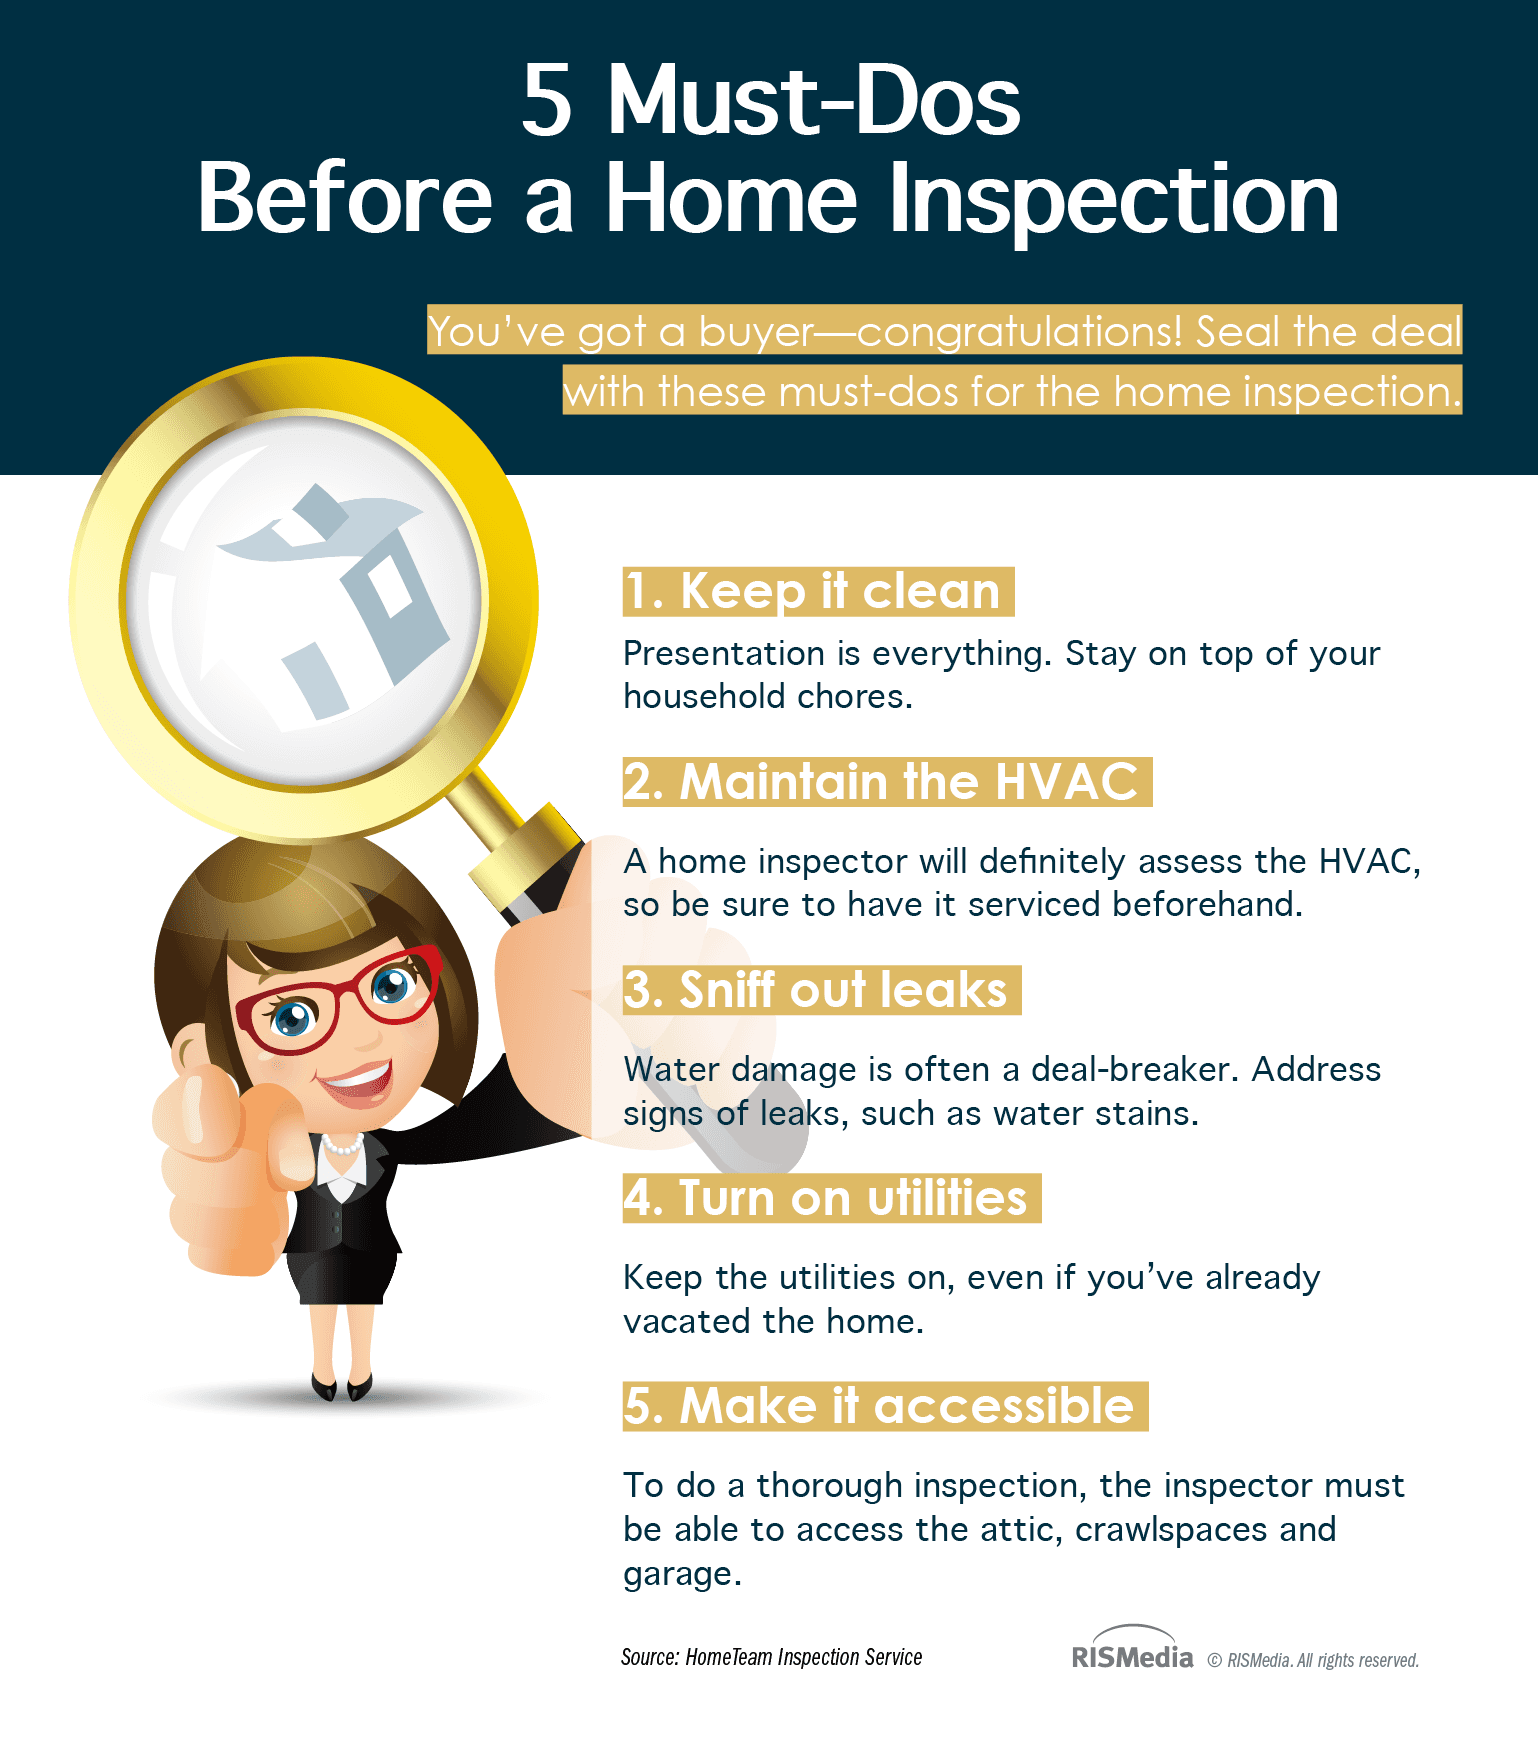 Important Advice On 5 Things You Must Do Before A Home Inspection